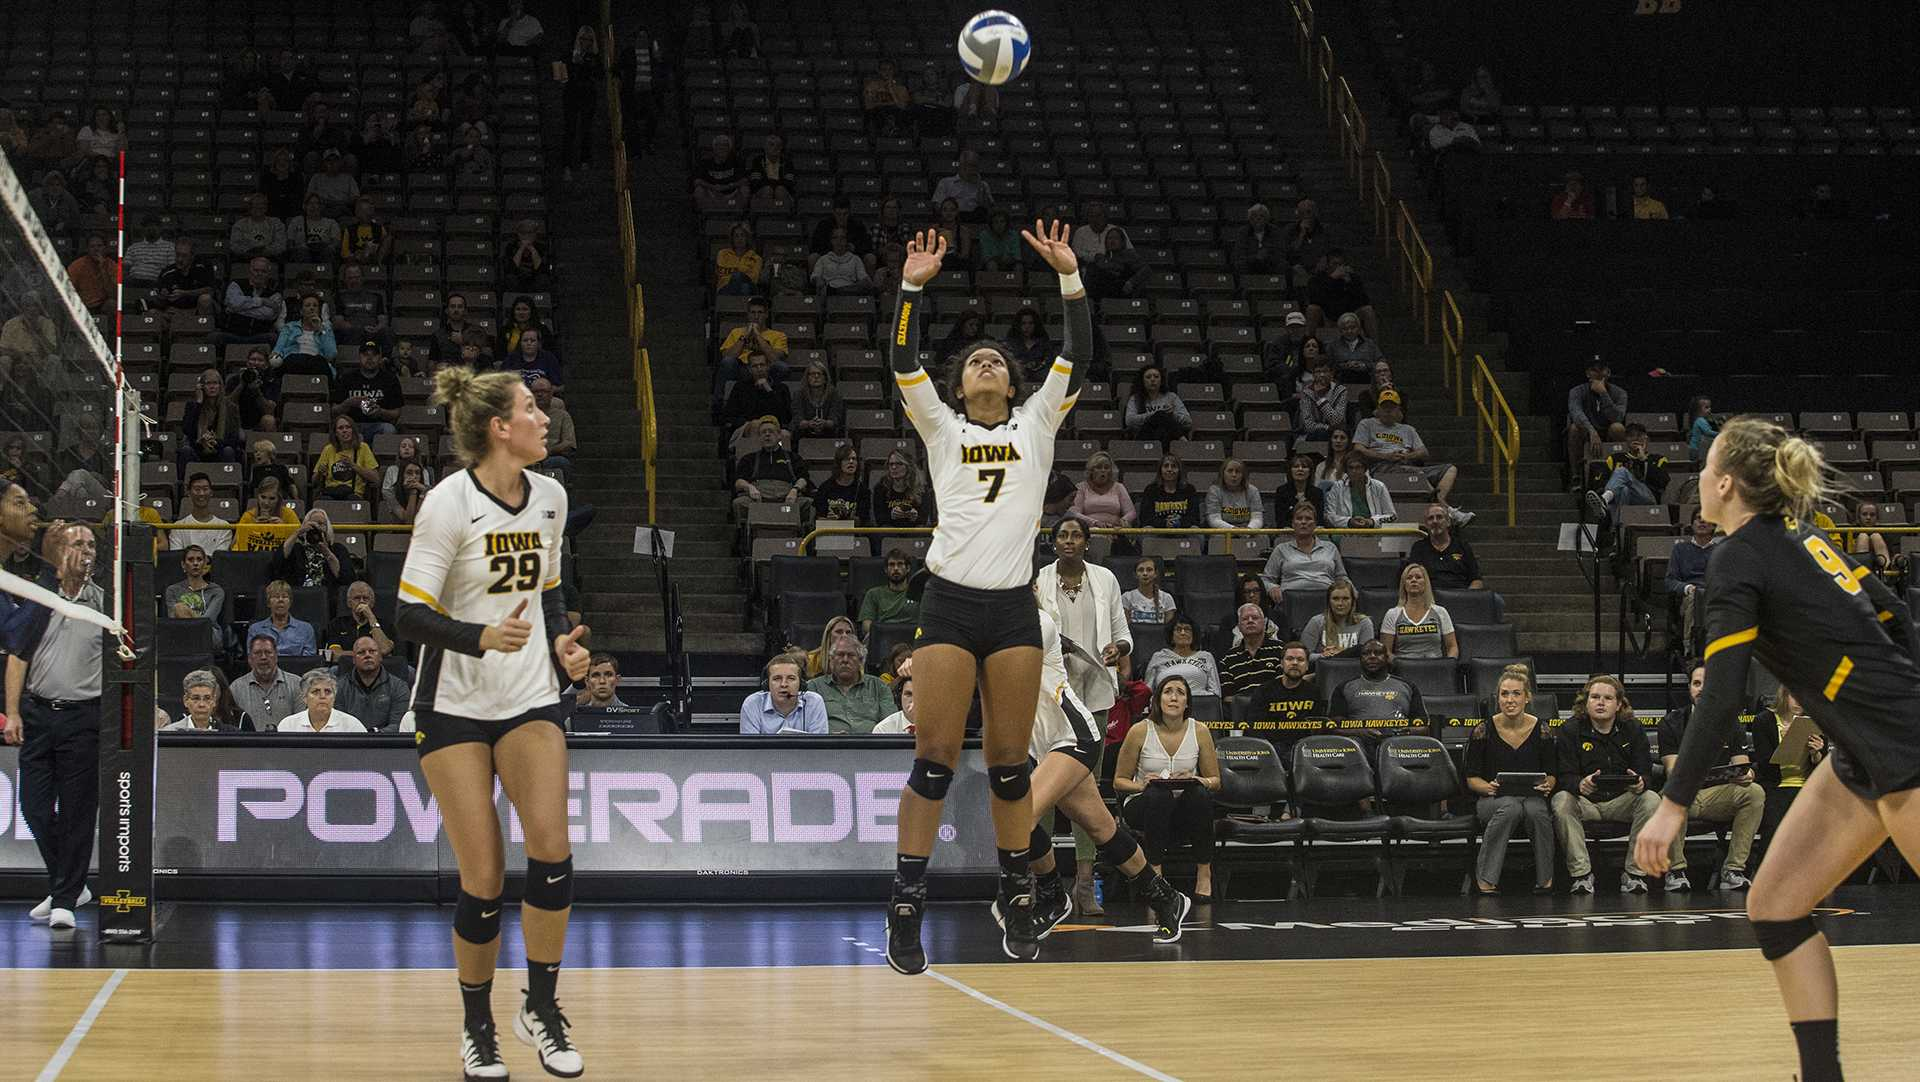 Iowa's Brie Orr sets the ball during a match against Michigan at Carver-Hawkeye Arena on Wednesday, Oct. 4, 2017. Iowa defeated Michigan 3 sets to 1. (Nick Rohlman/The Daily Iowan)